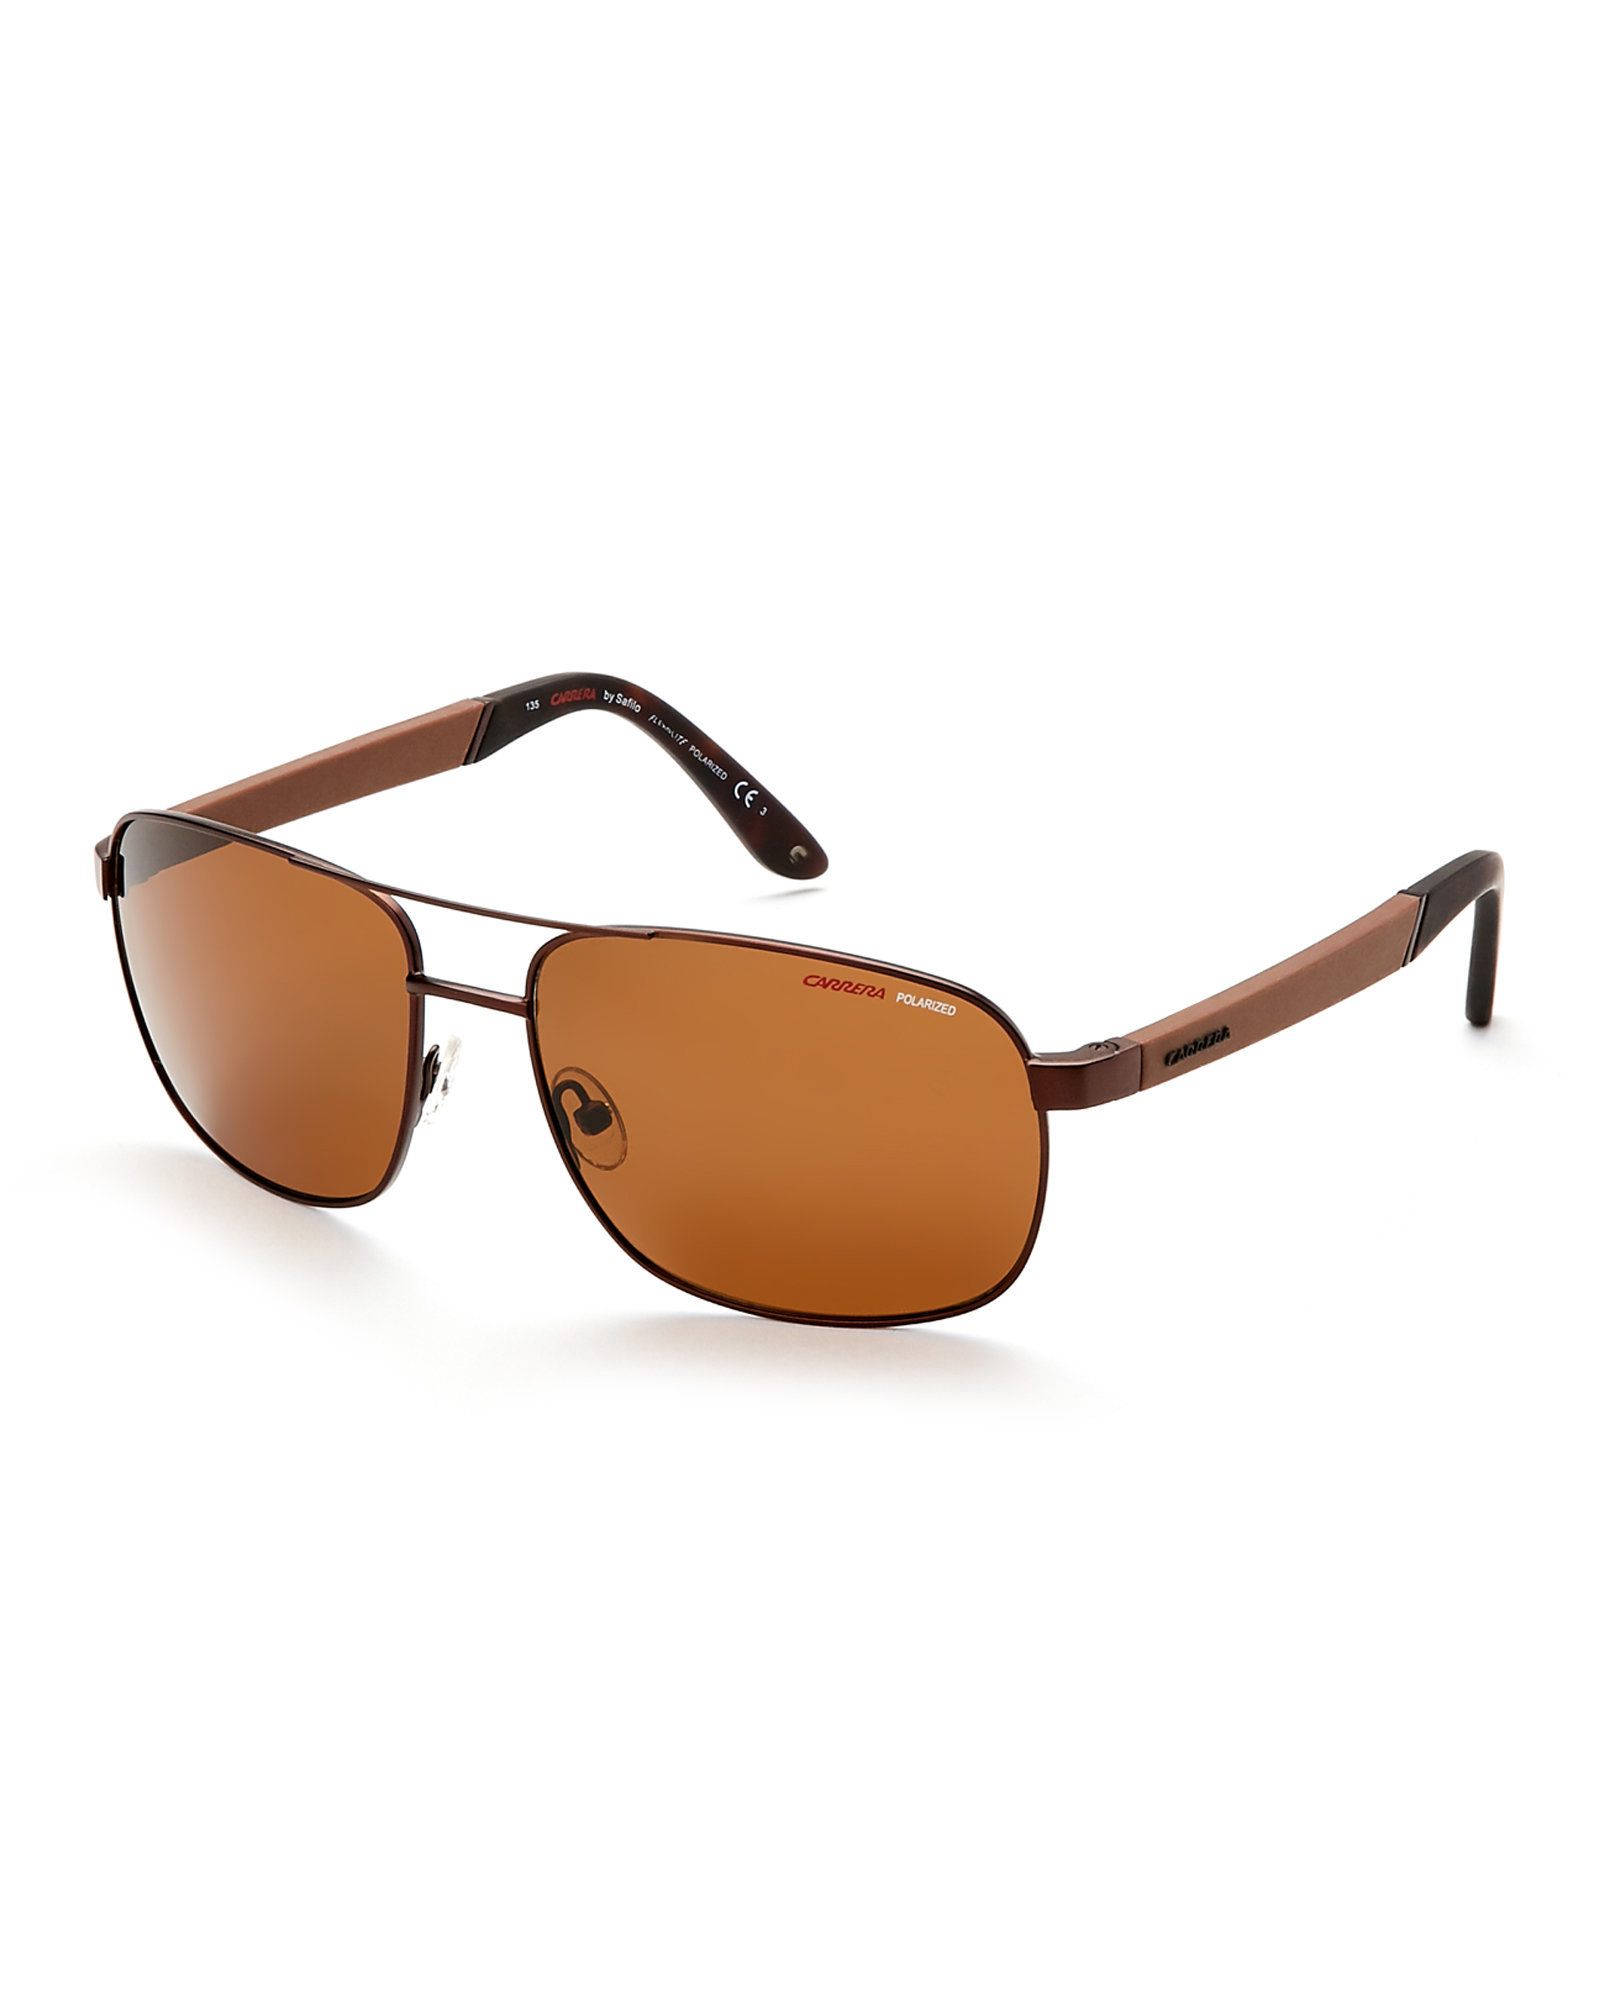 588d014b2b Lyst - Carrera Bronze-Tone   Black 8005 S Navigator Sunglasses in ...